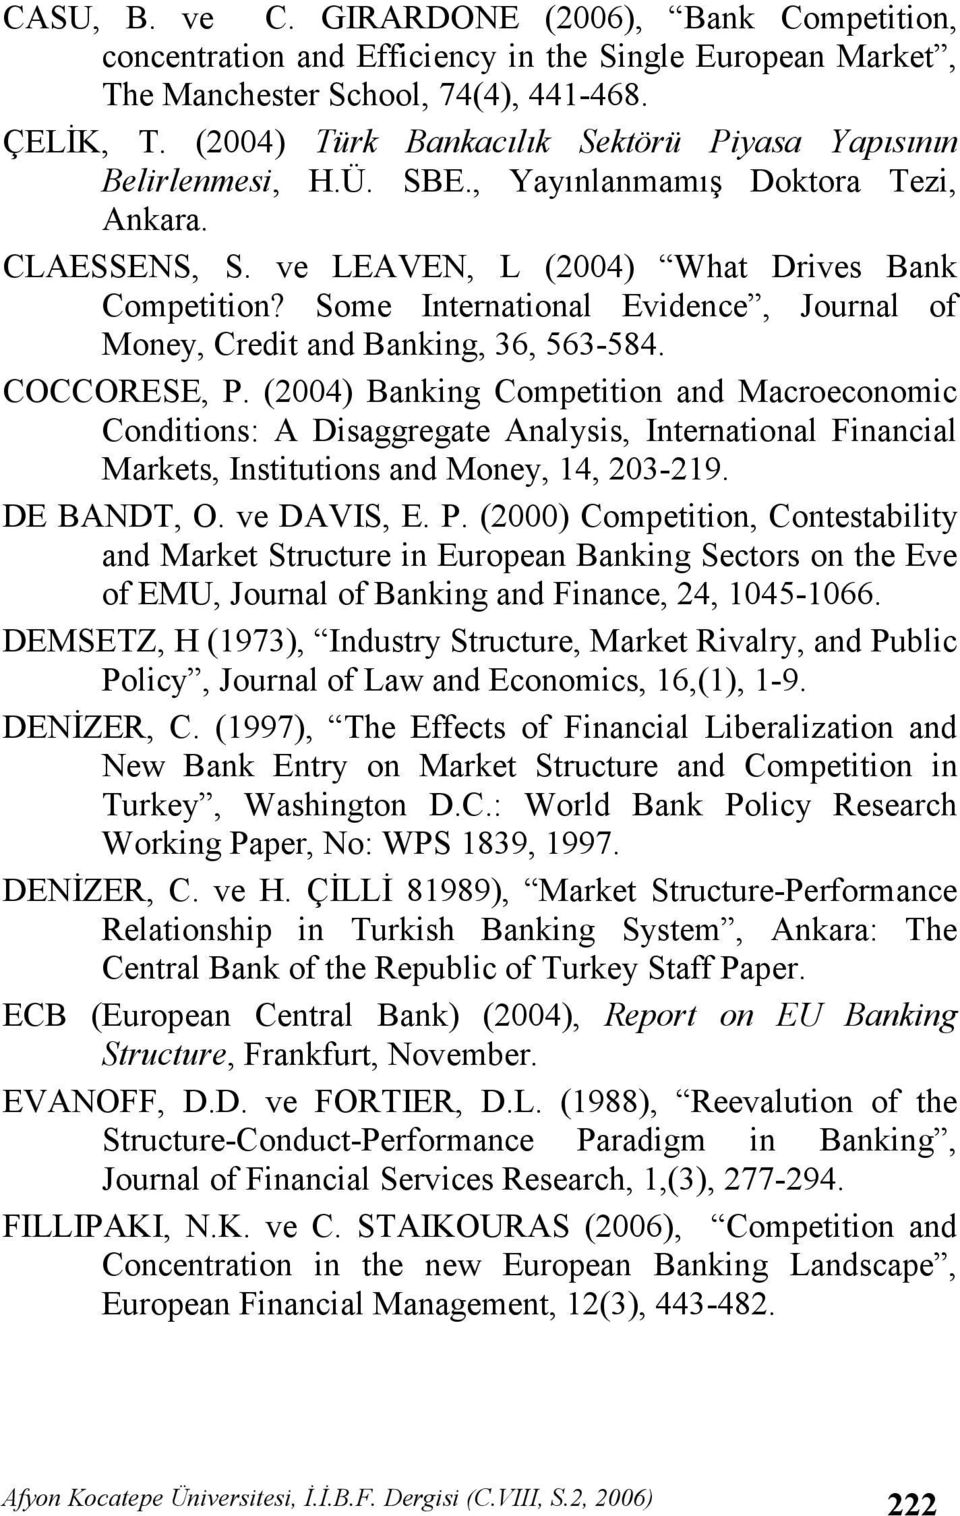 Some International Evidence, Journal of Money, Credit and Banking, 36, 563-584. COCCORESE, P.